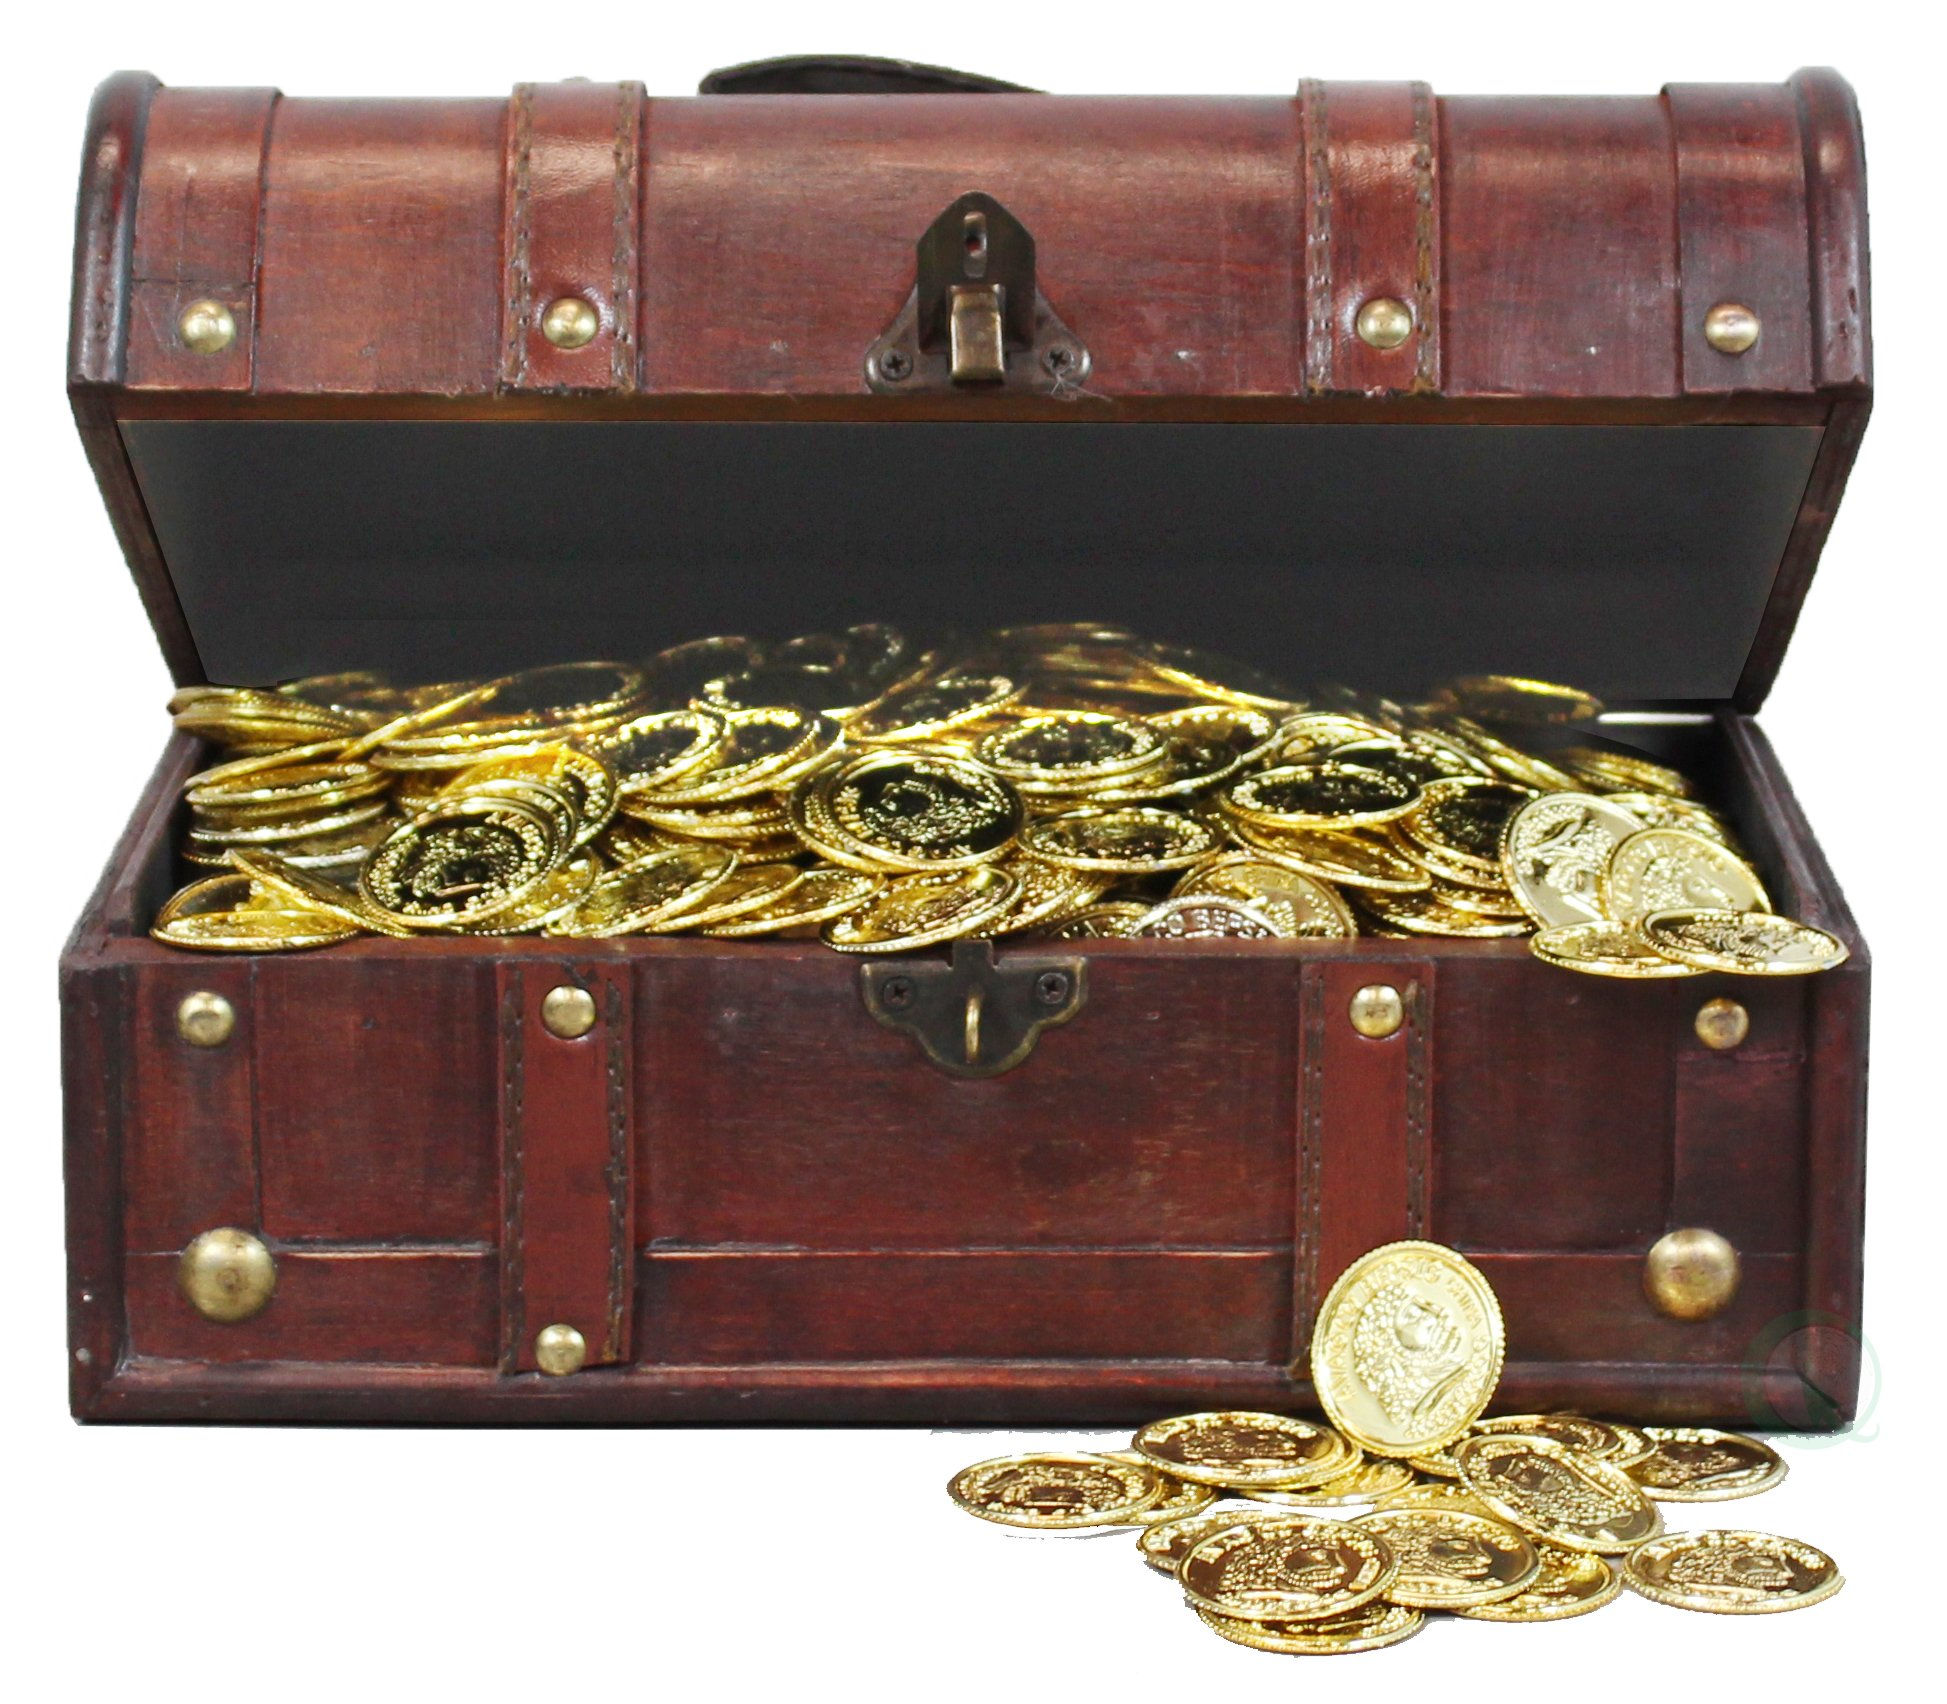 Pirate Treasure Chest with 114 Coins by Decorative Gifts